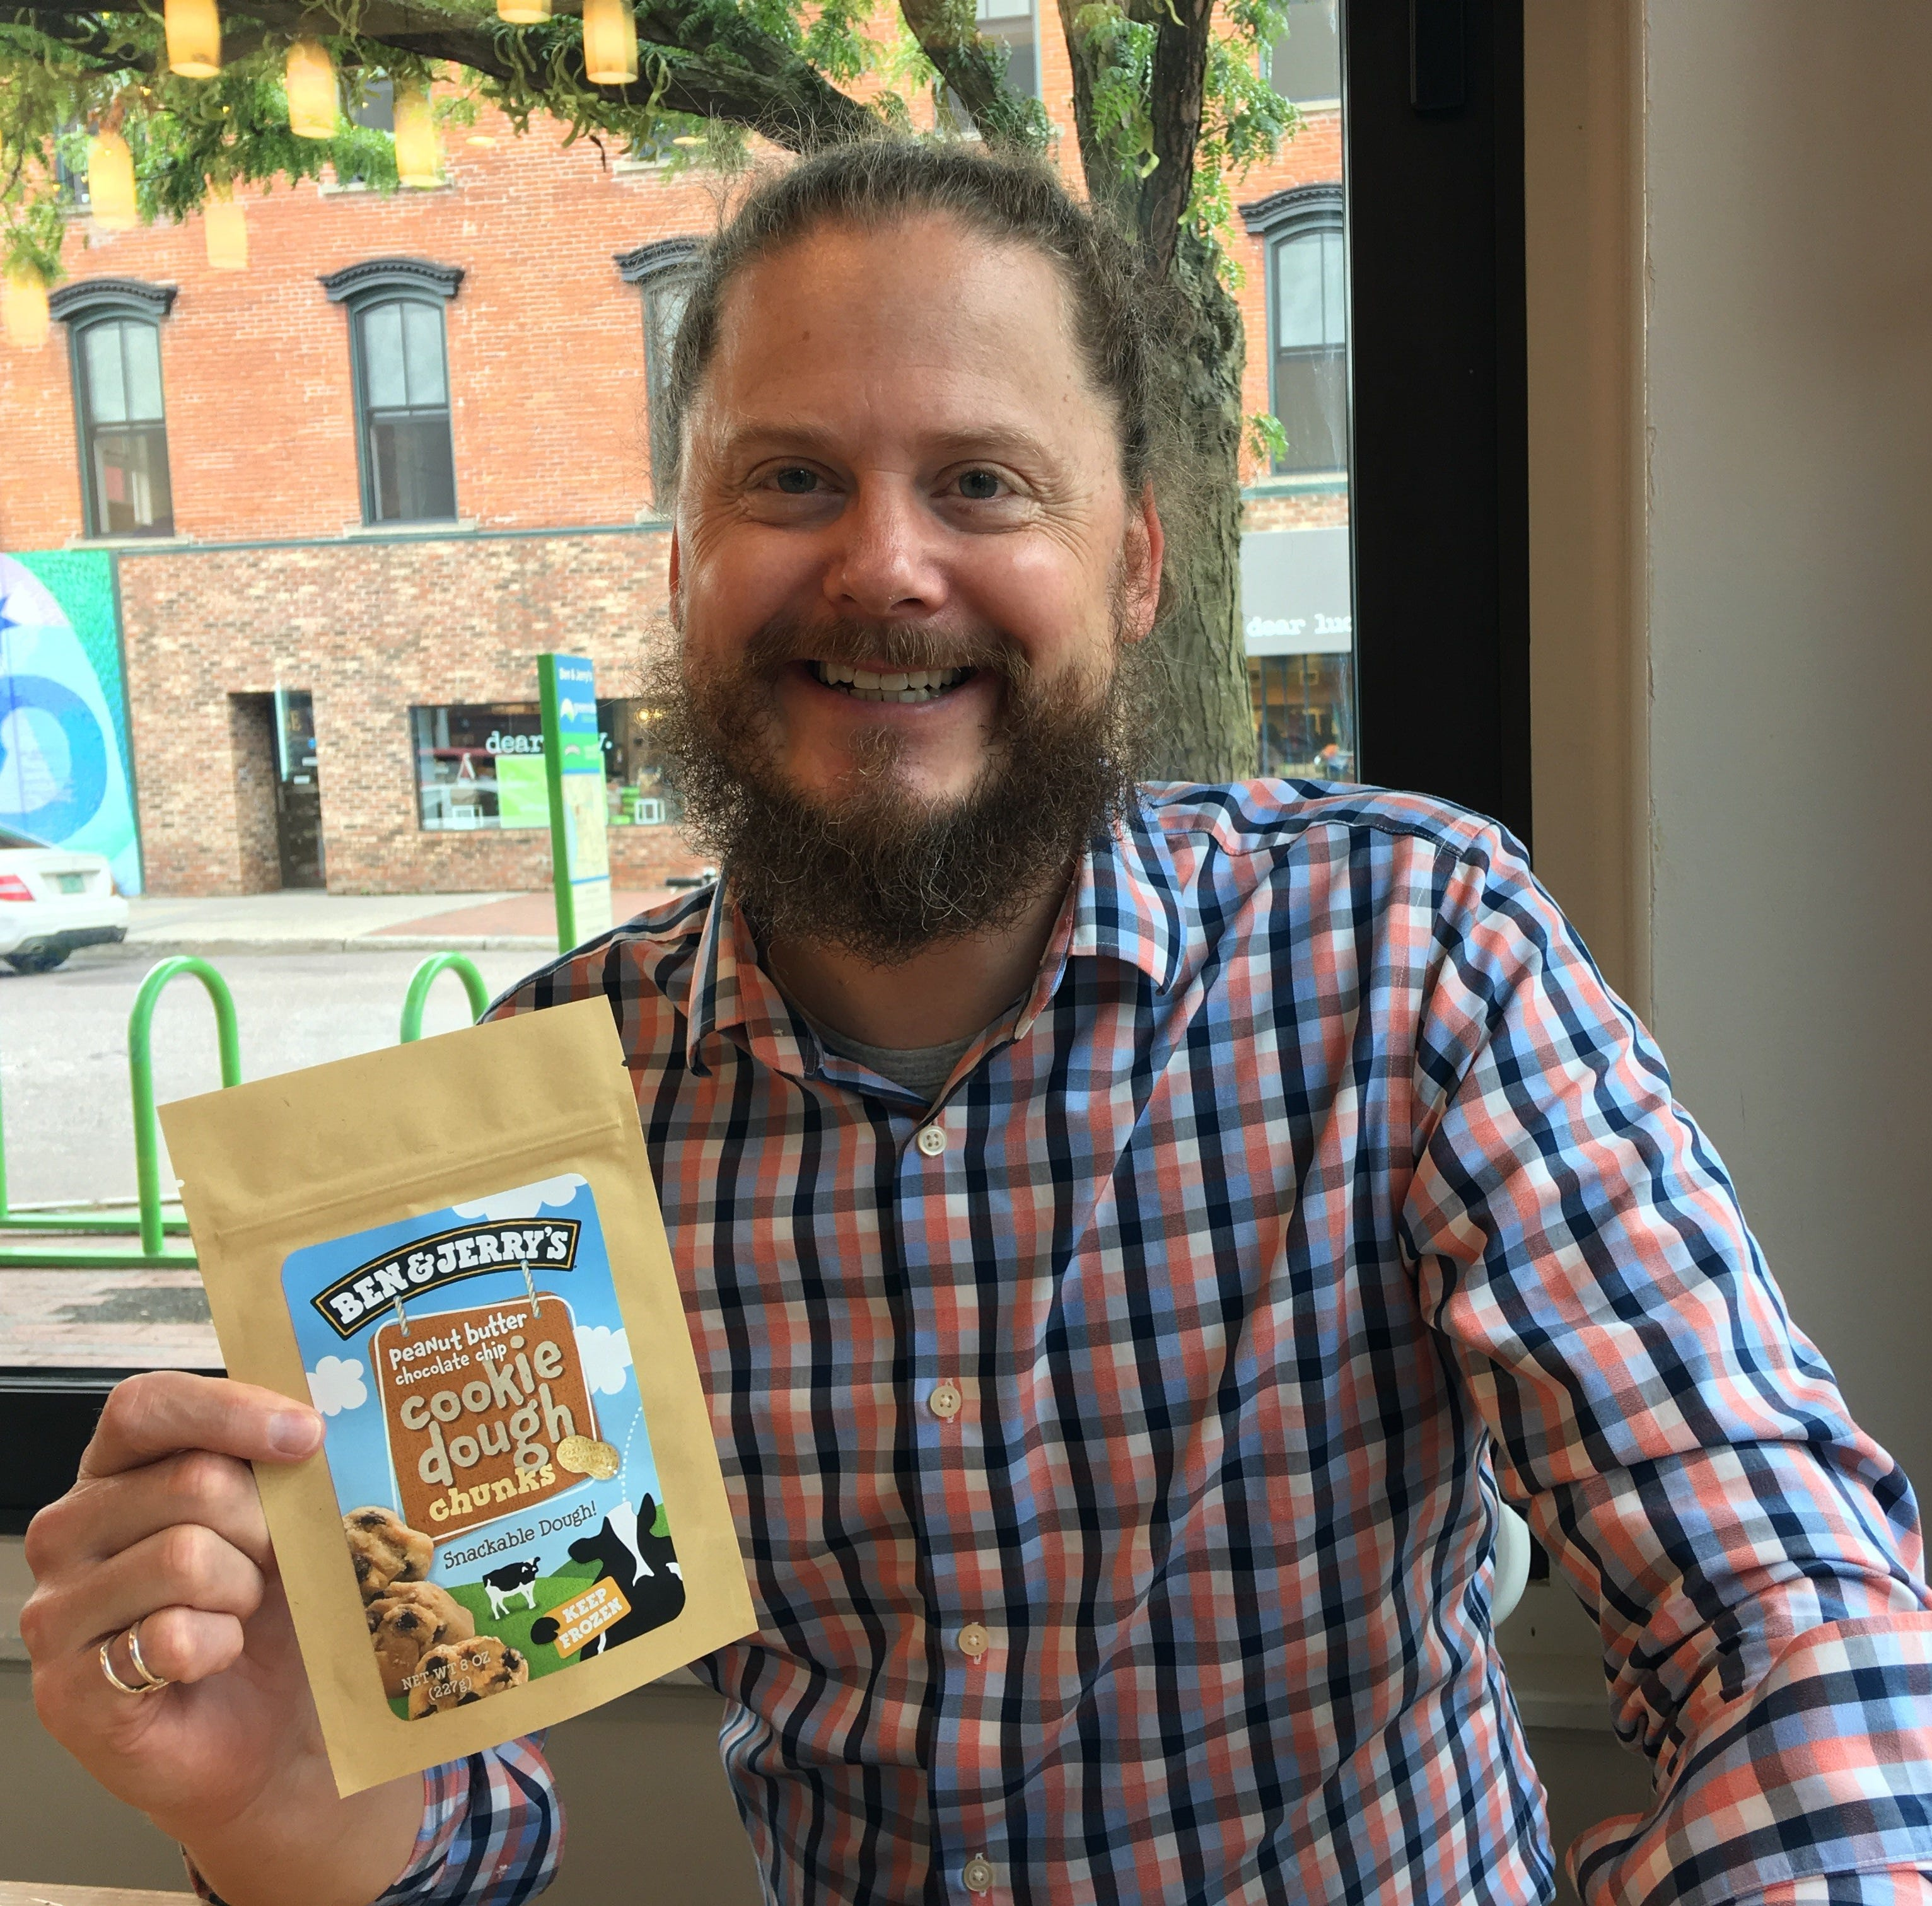 New CEO takes over at Ben & Jerry's